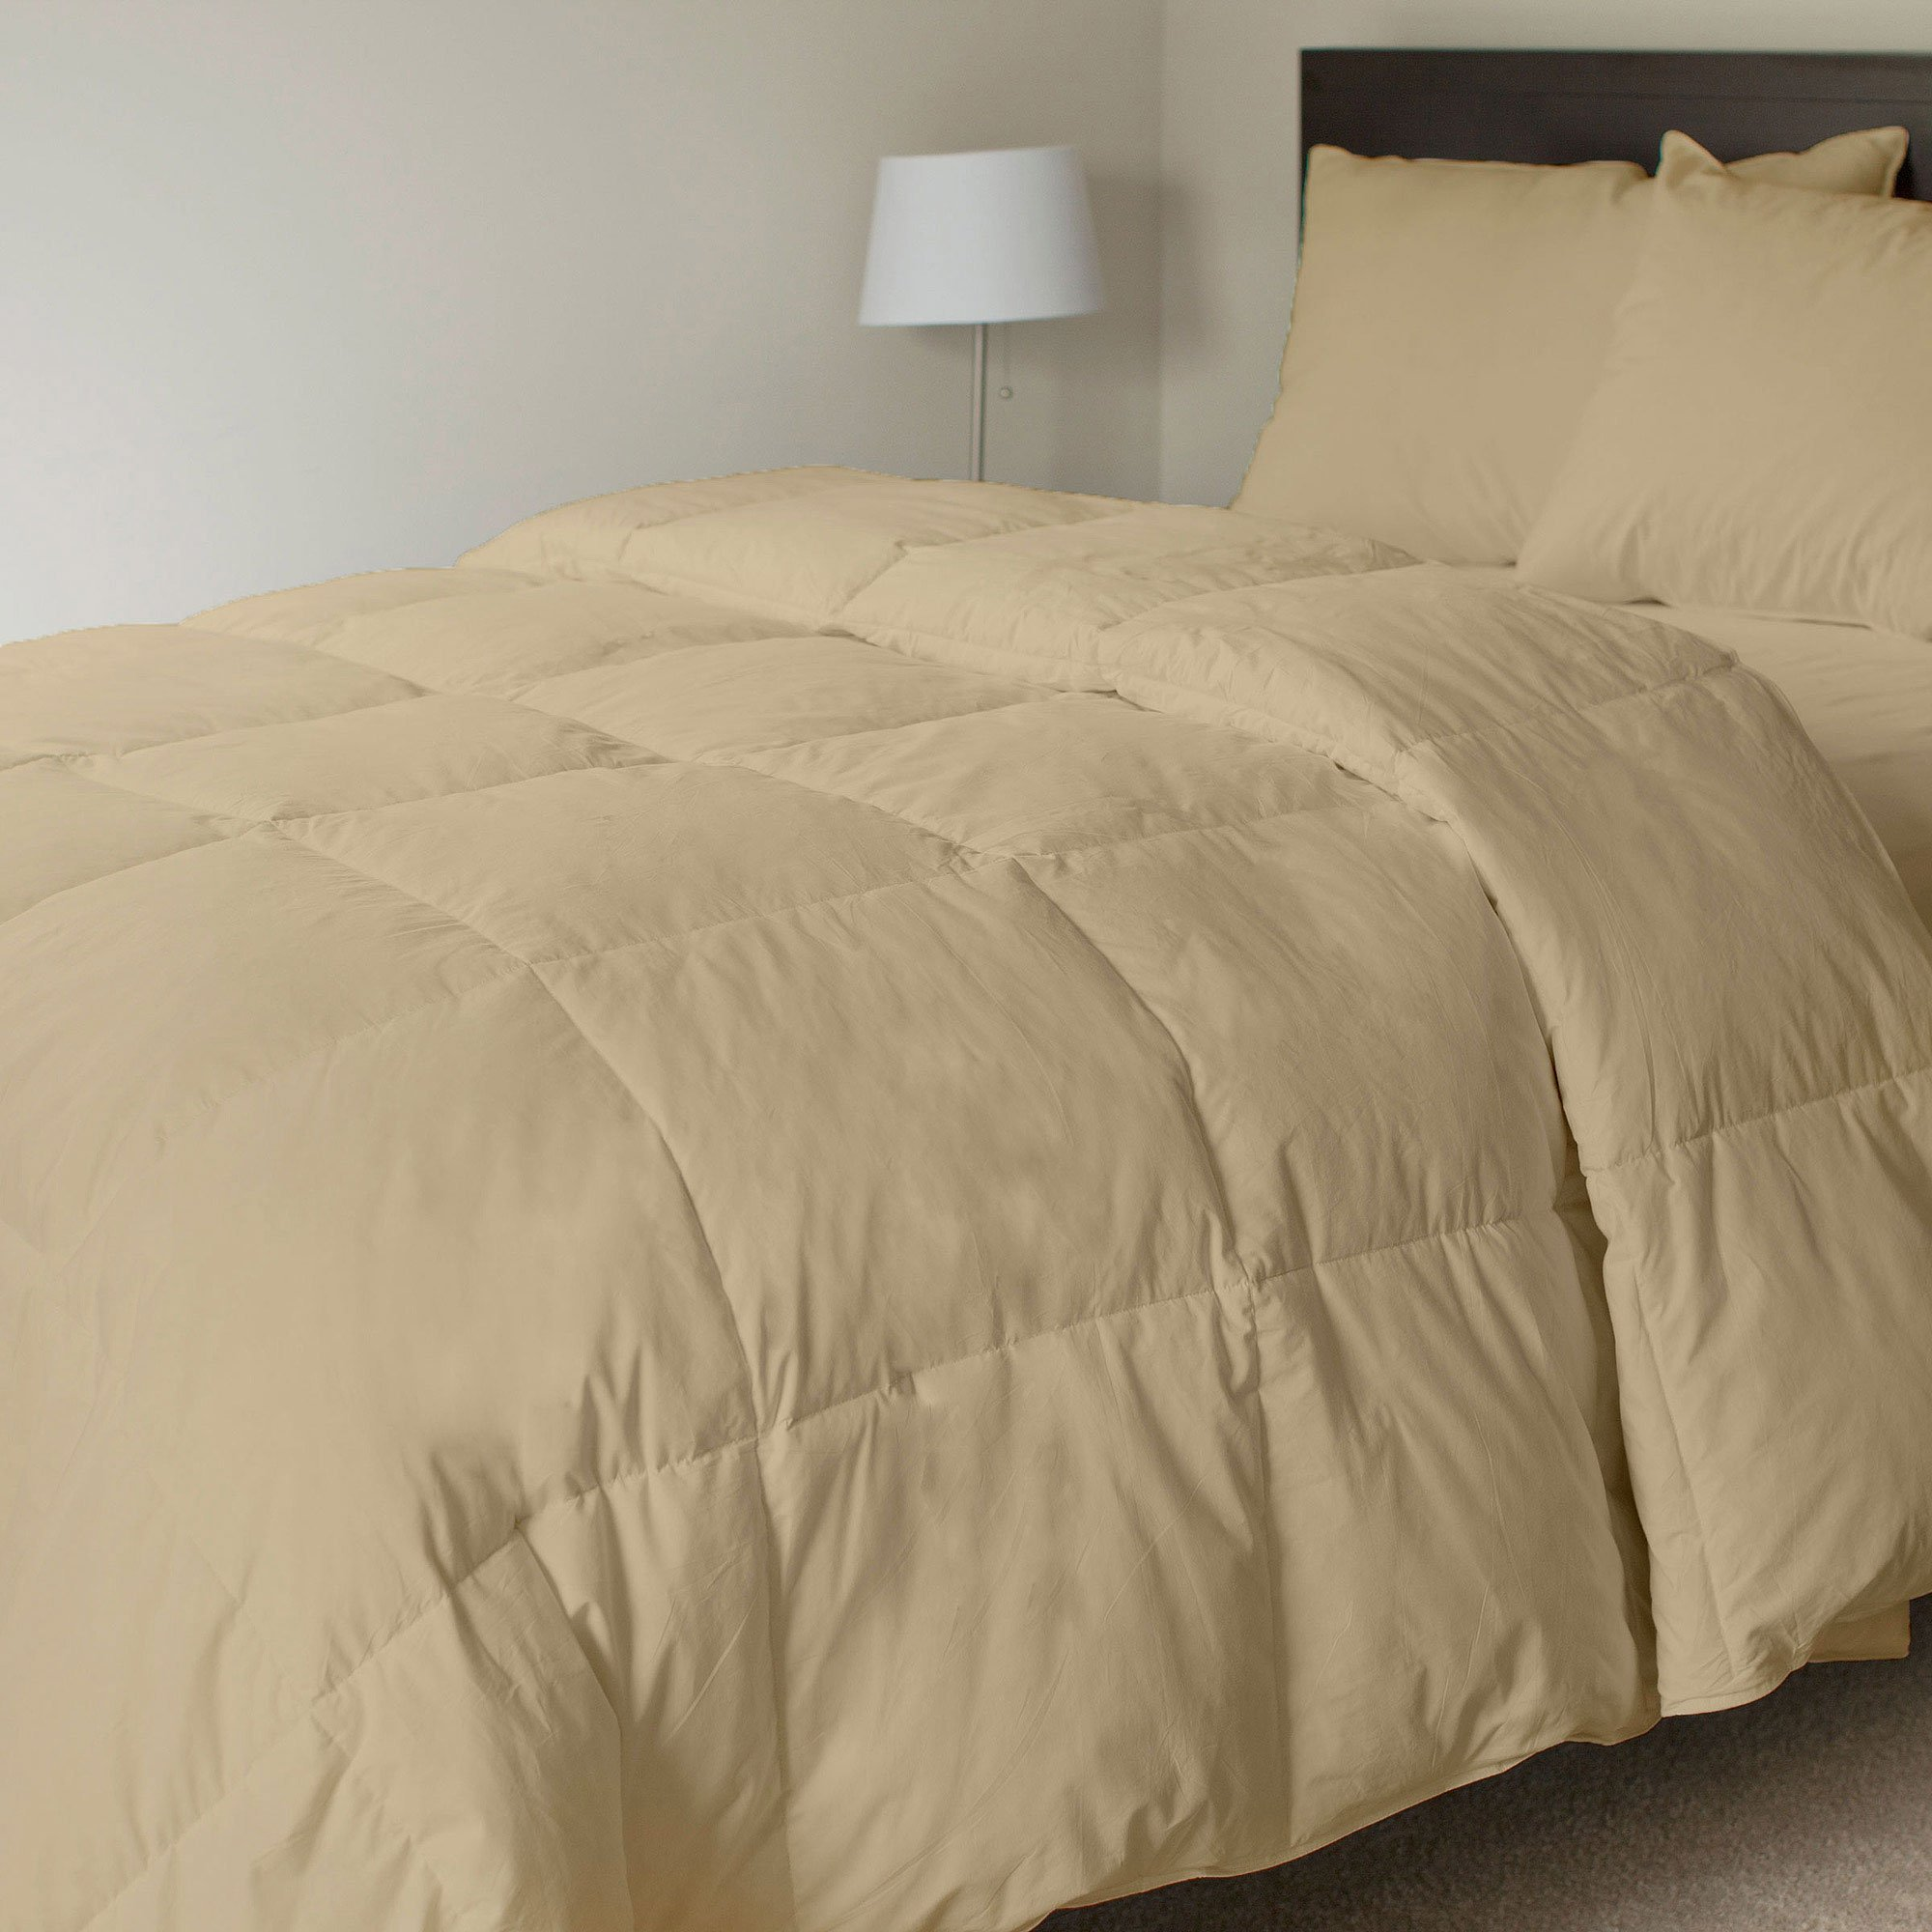 Elegant and Premium Quality Comforter by Comfy-Lecho 500 GSM HEAVEN LIKE FEEL All Season Warm Fluffy Ultra-Soft and Smooth,100% Egyptian cotton and Long Staple Comes with Italian Finish(King-Taupe)